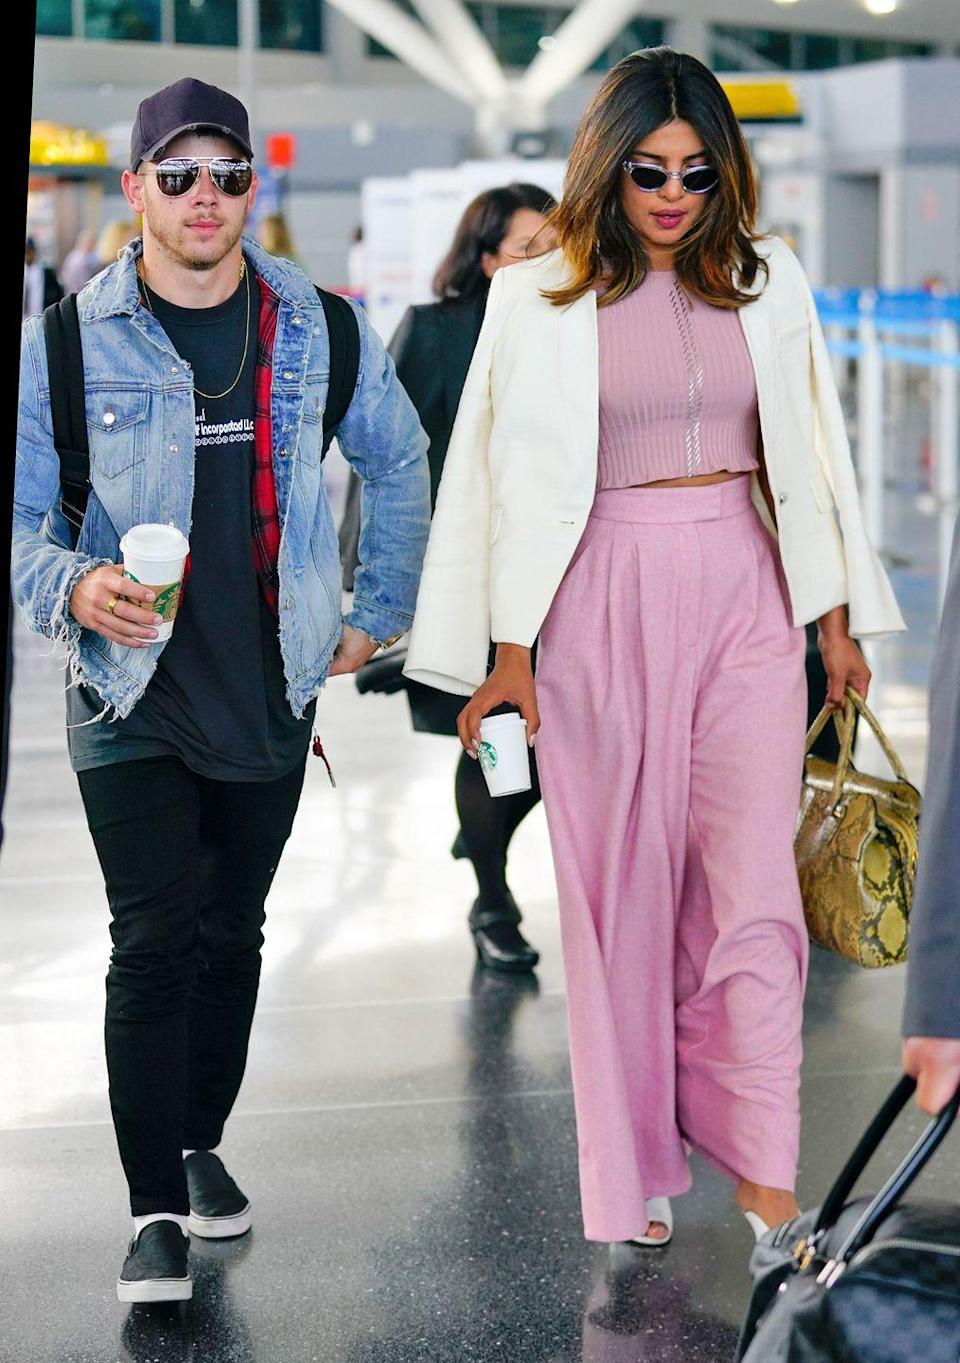 <p>After rumours begin to swirl that Nick and Priyanka are together, the couple are spotted at a New York City airport.</p>